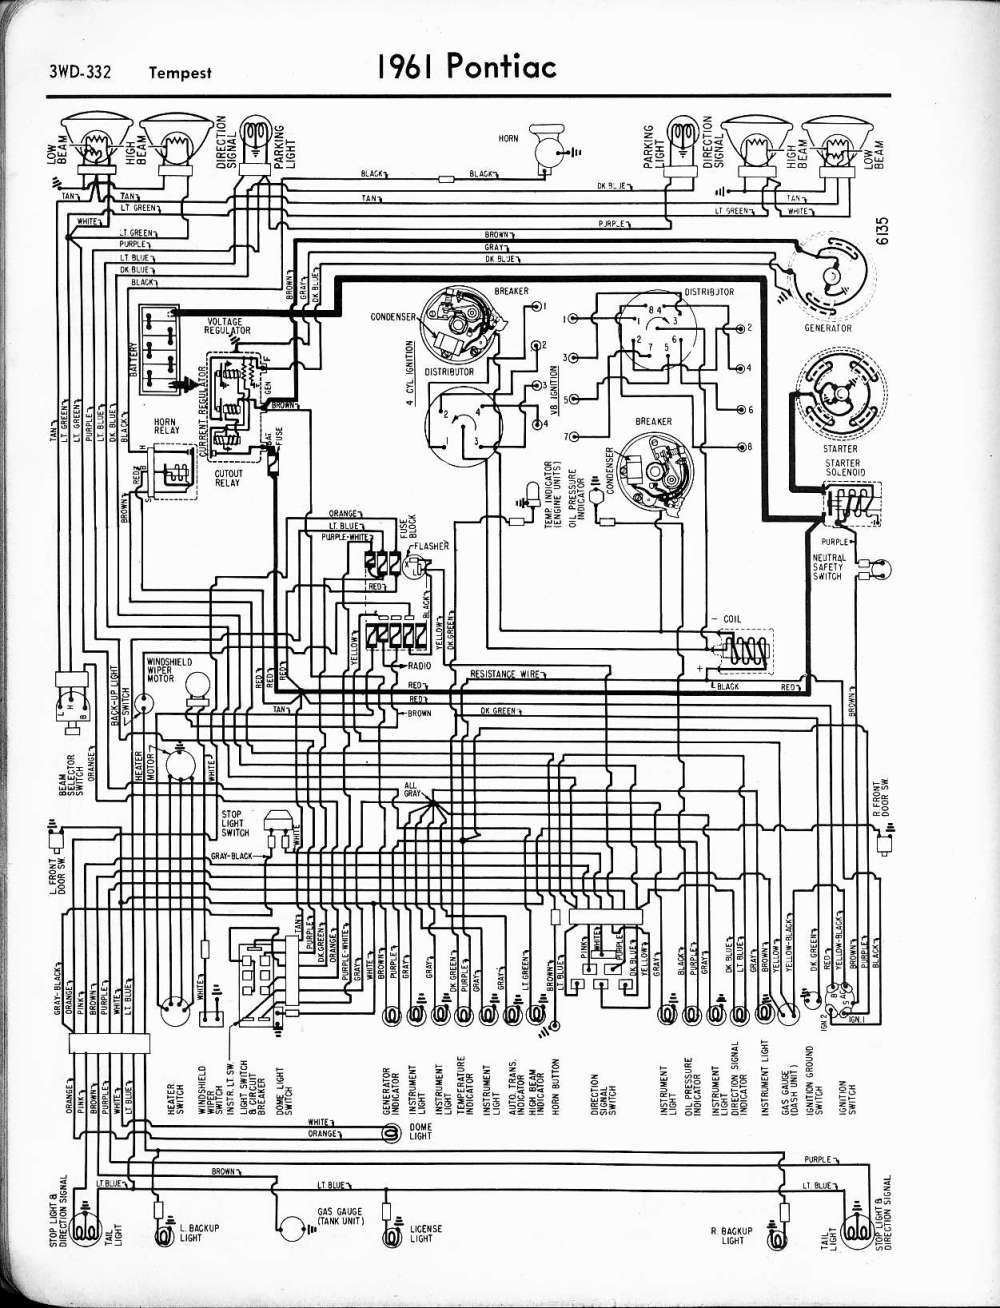 medium resolution of wire diagram for pontiac wiring diagram imgwire diagram for pontiac wiring diagram name wiring diagram for